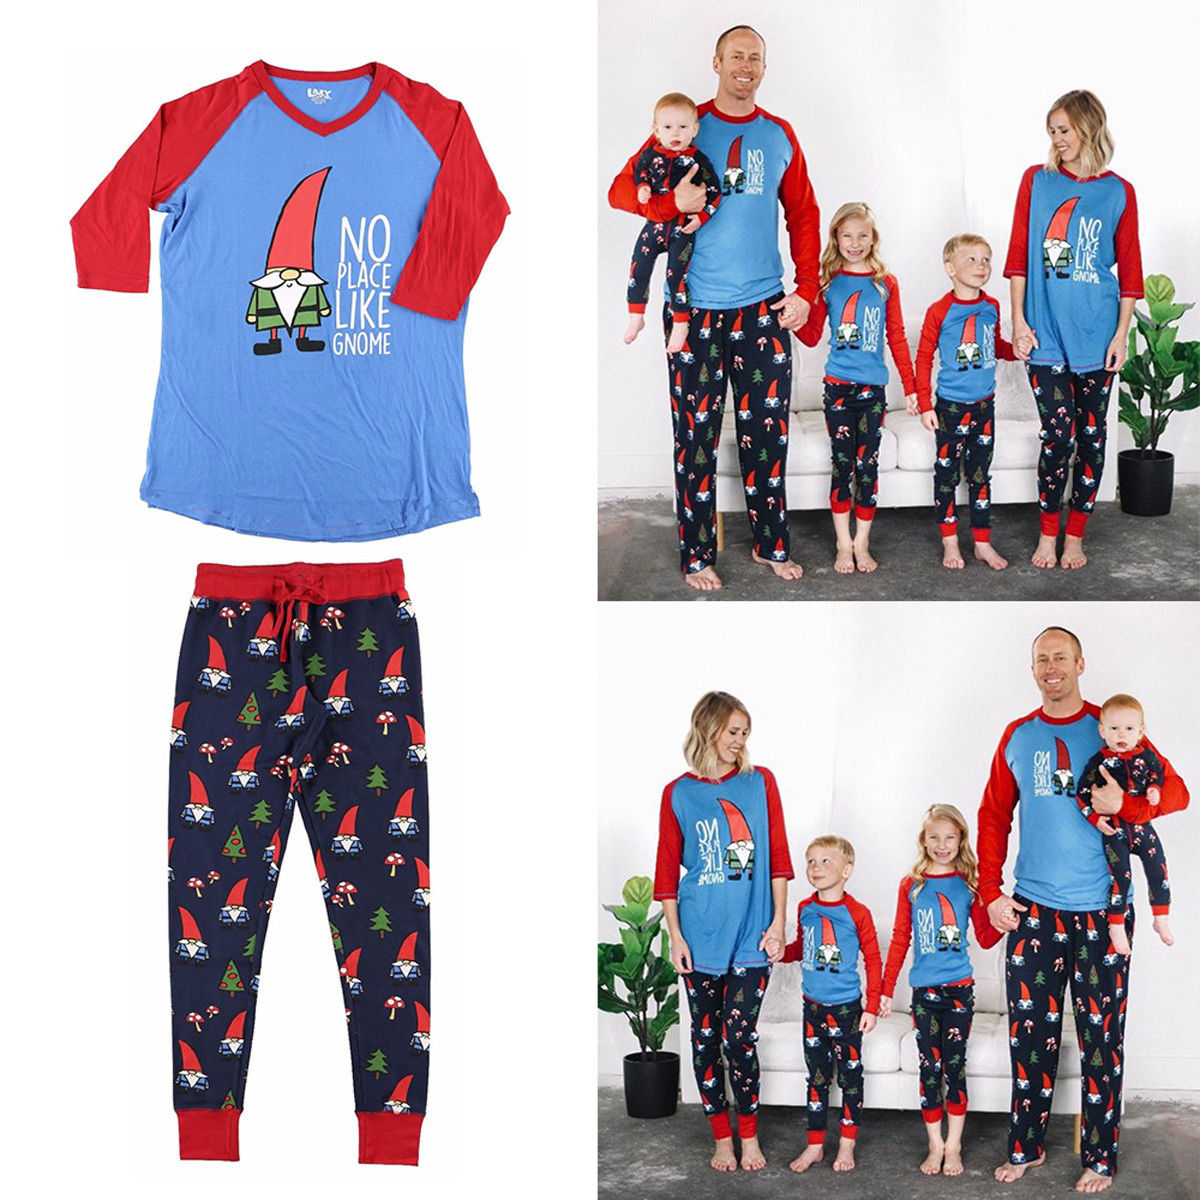 22d1792a07 2018 Multitrust Brand Christmas Family Matching Cute Pajamas Adult Women  Kids Baby Sleepwear Christmas Set Plus